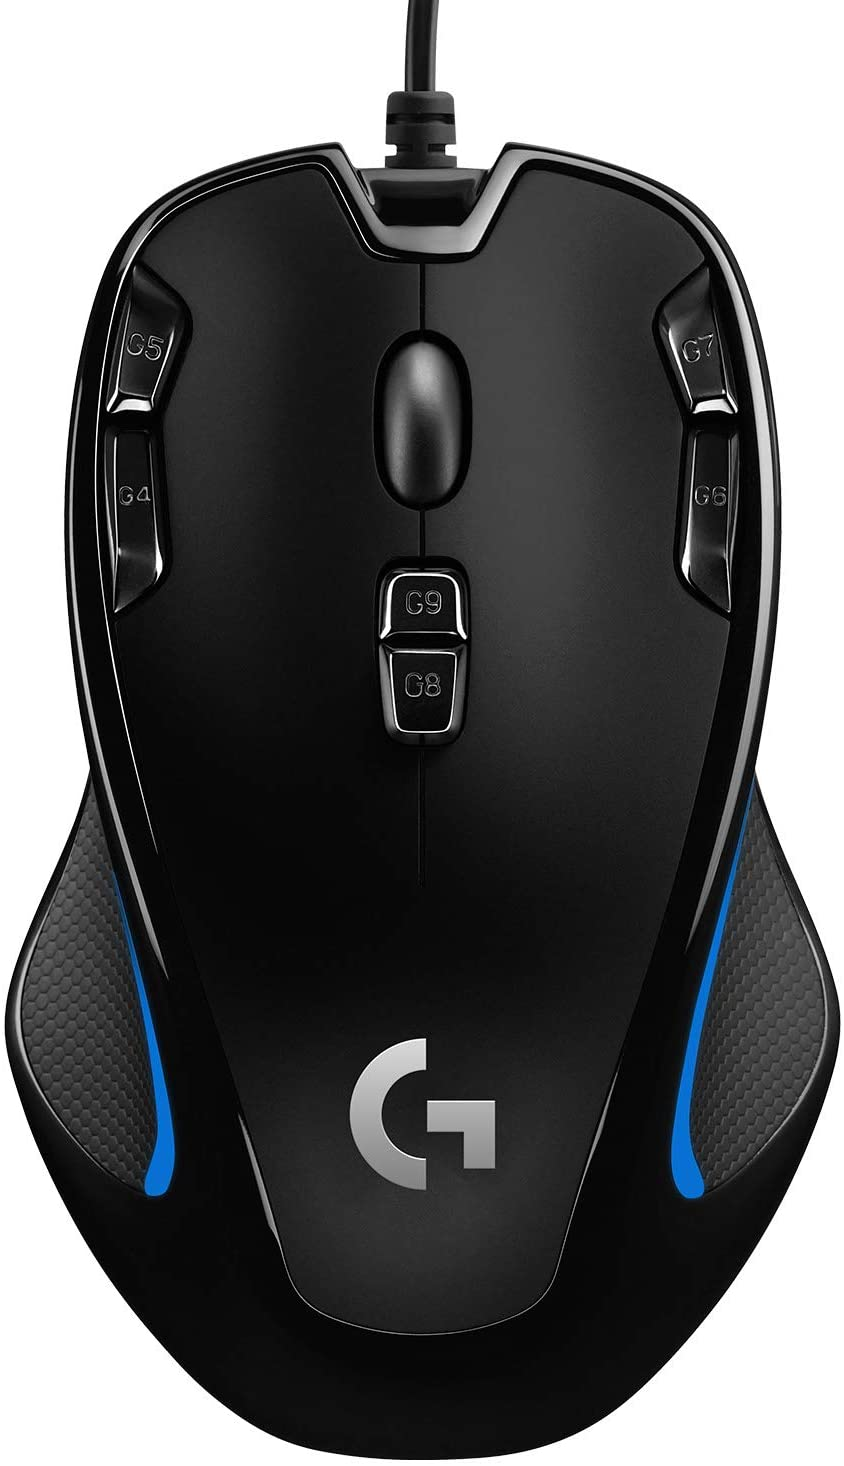 10 Best Gaming Mouse for Small Hands - 2021 Buying Guide 4